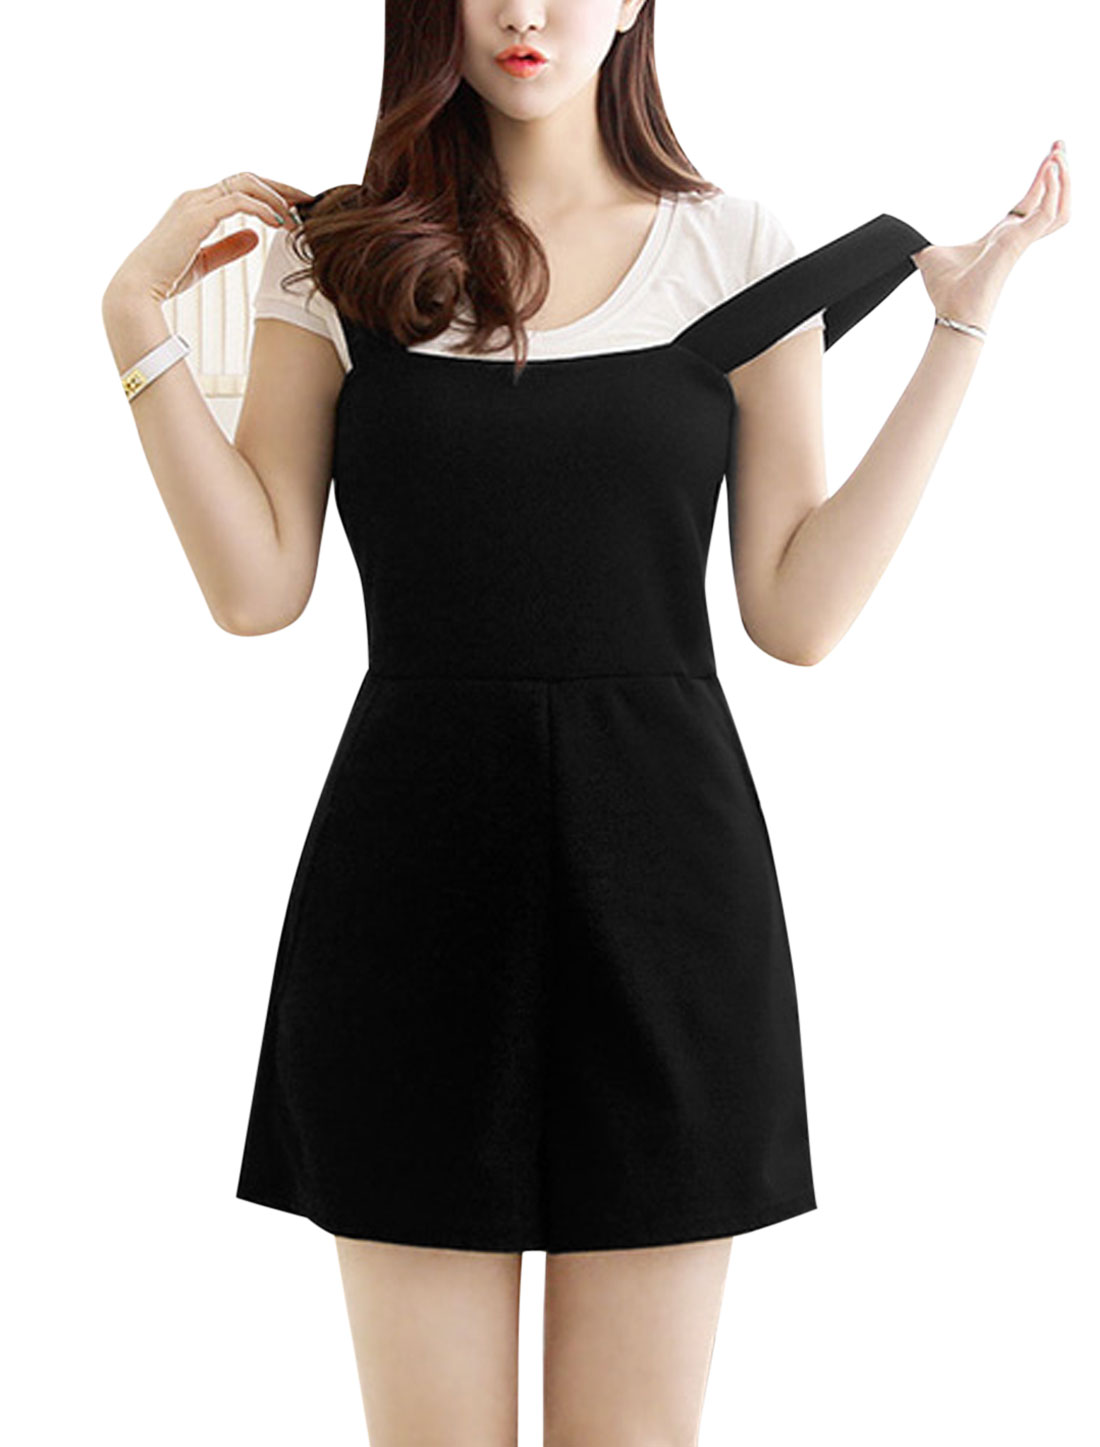 Ladies Square Neckline Sleeveless Concealed Zipper Back Playsuits Black XS